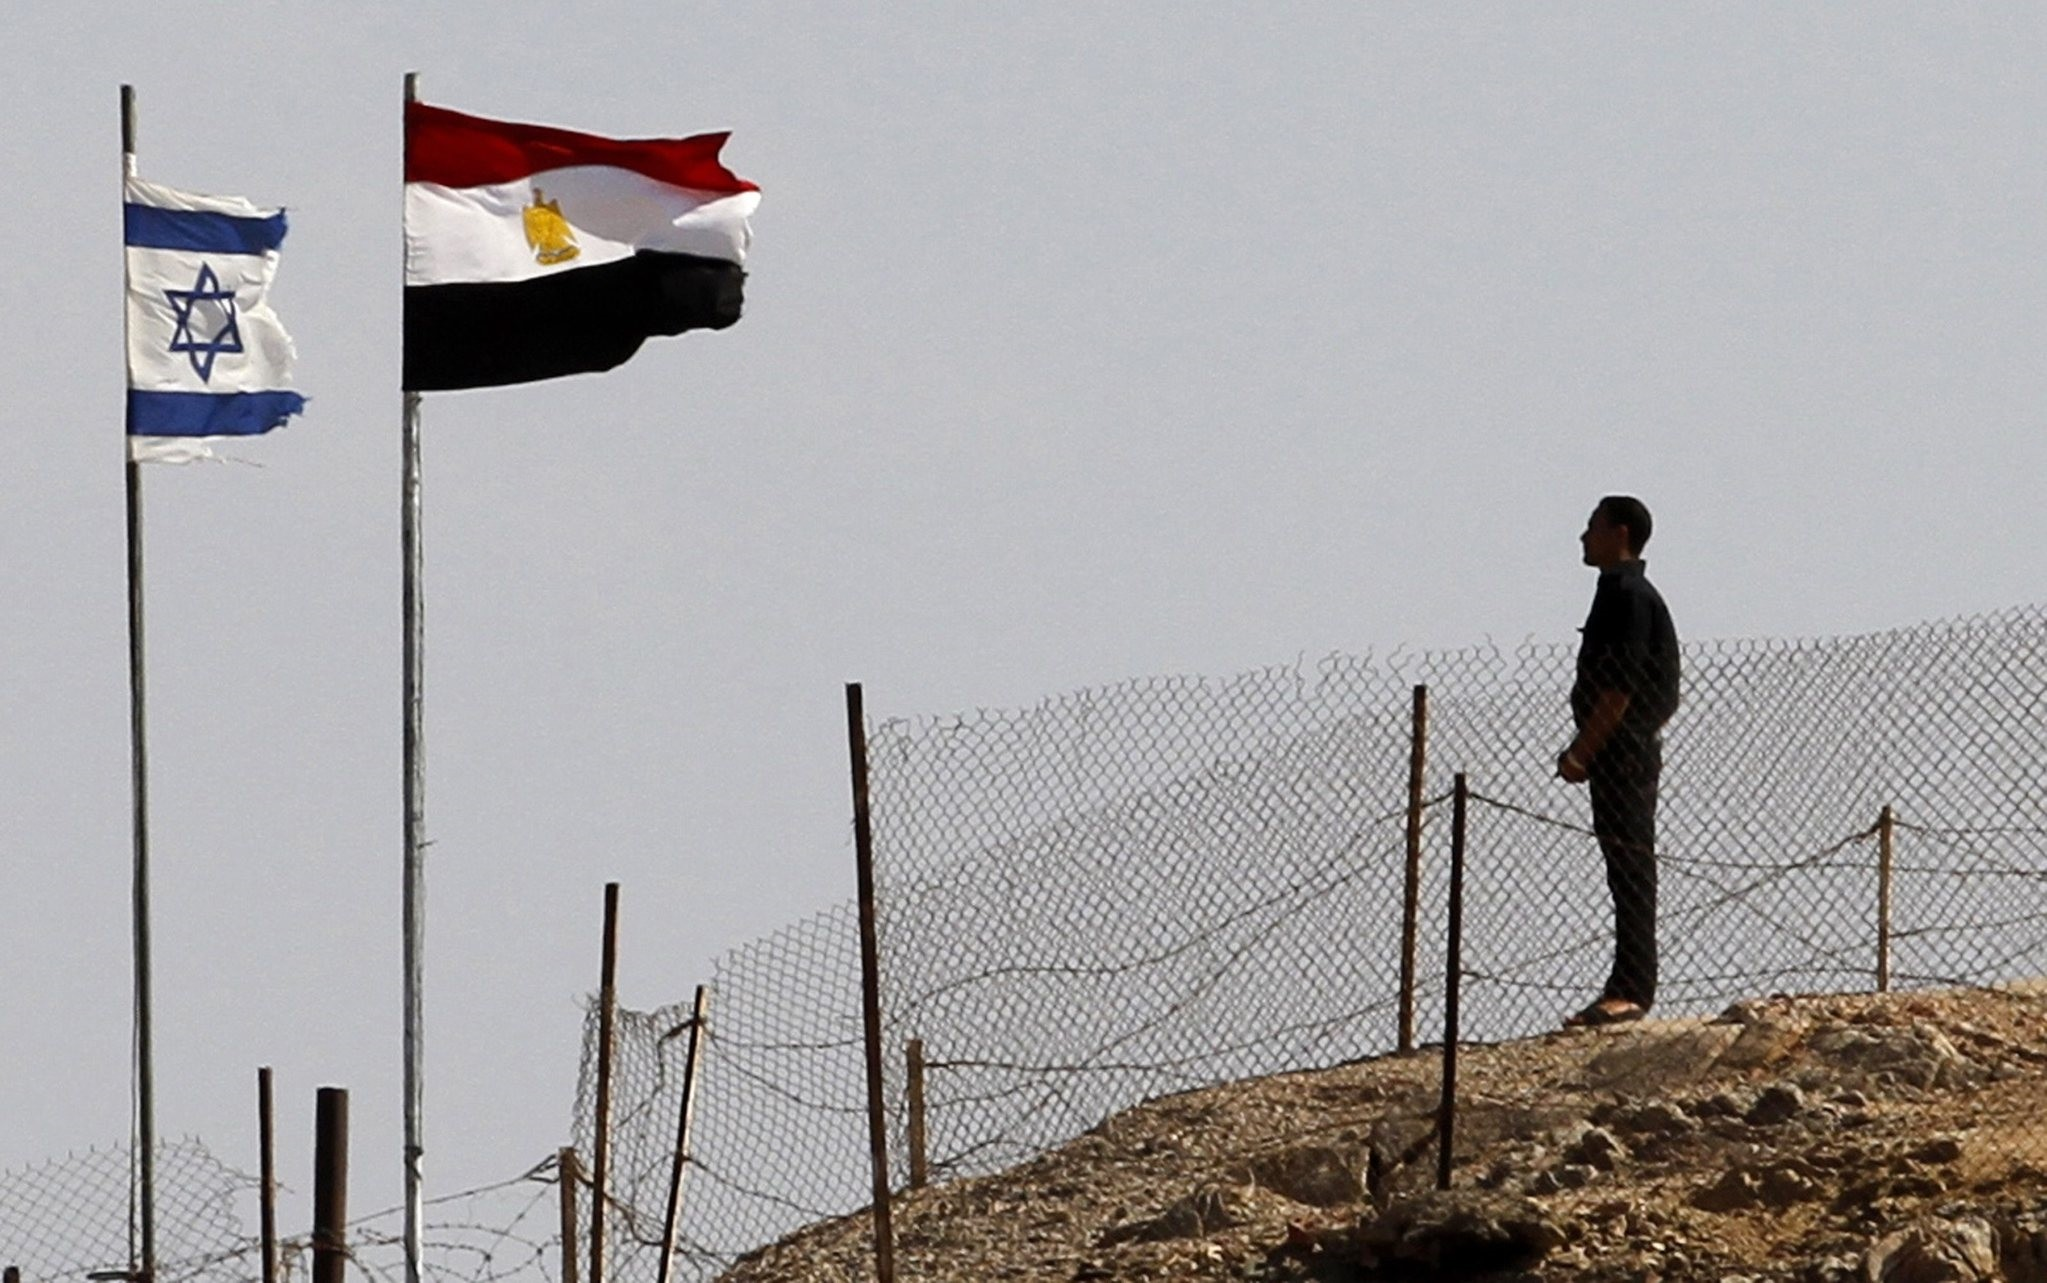 An Egyptian soldier stands near the Egyptian national flag and the Israeli flag at the Taba crossing between Egypt and Israel, about 430 km (256 miles) northeast of Cairo, October 26, 2011. (Reuters Photo)